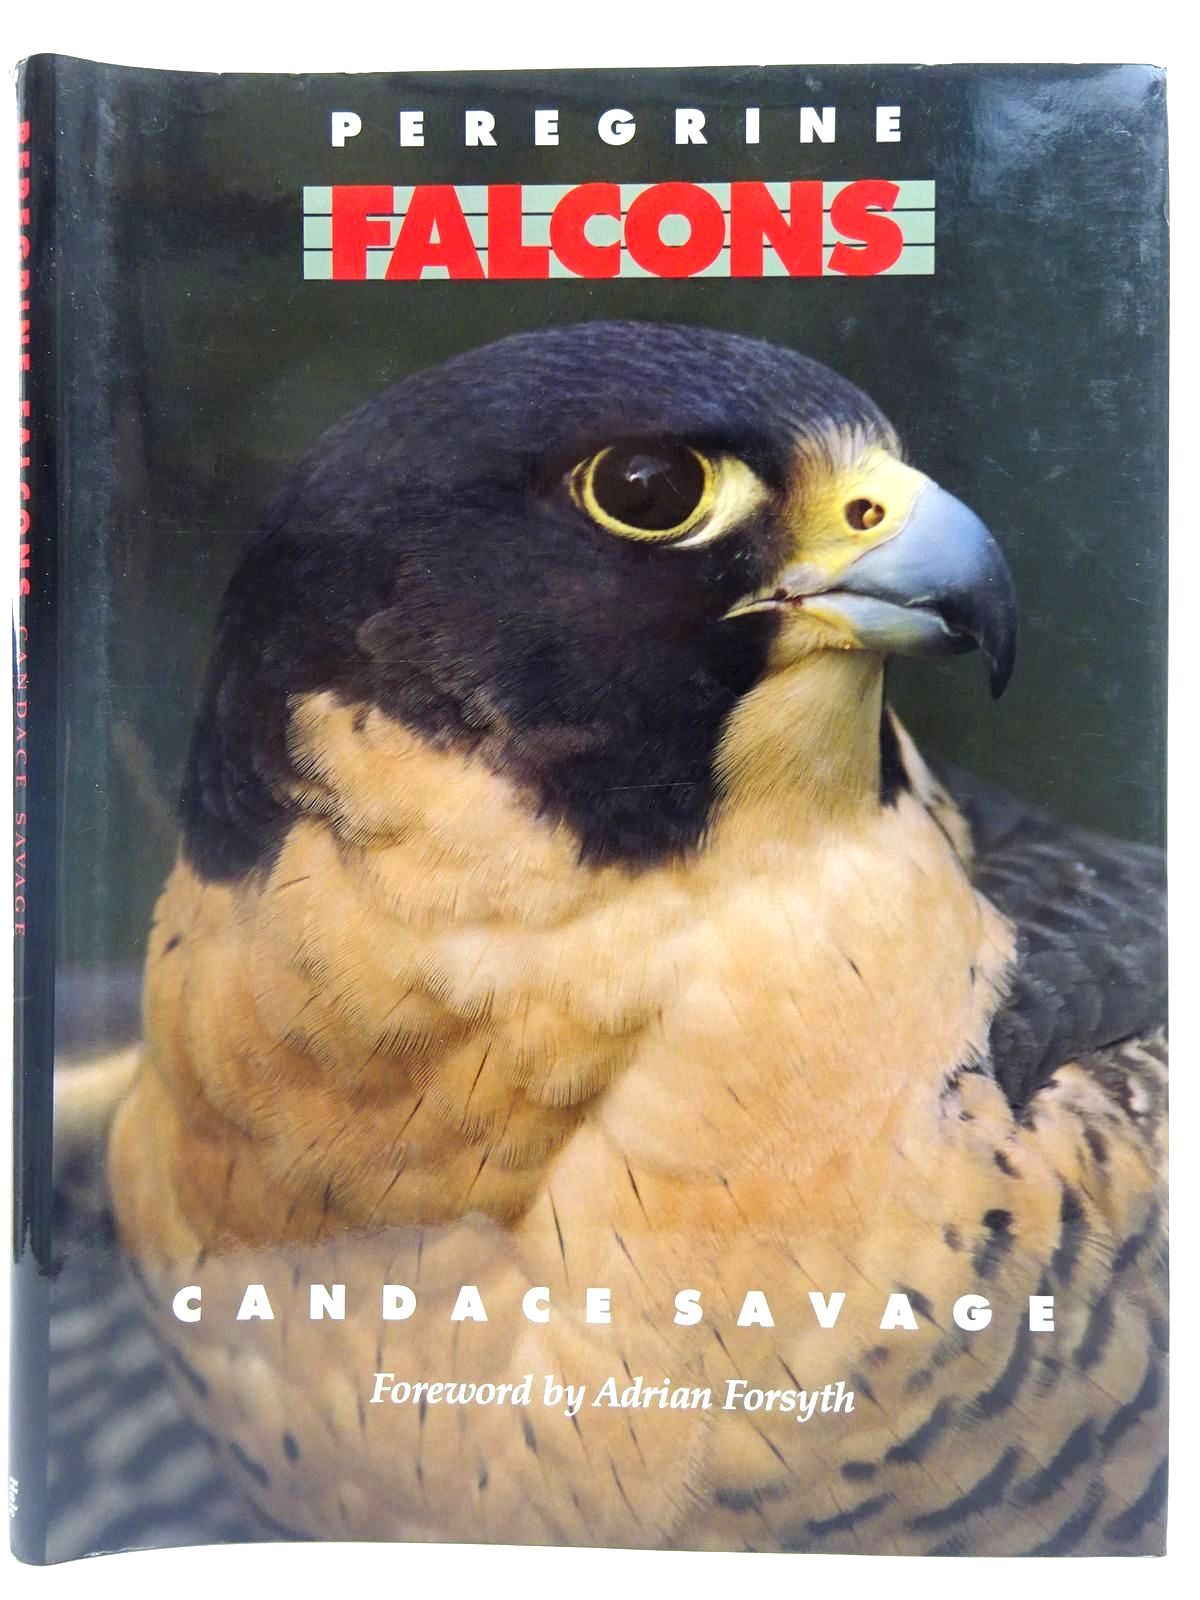 Photo of PEREGRINE FALCONS written by Savage, Candace published by Robert Hale (STOCK CODE: 2127744)  for sale by Stella & Rose's Books